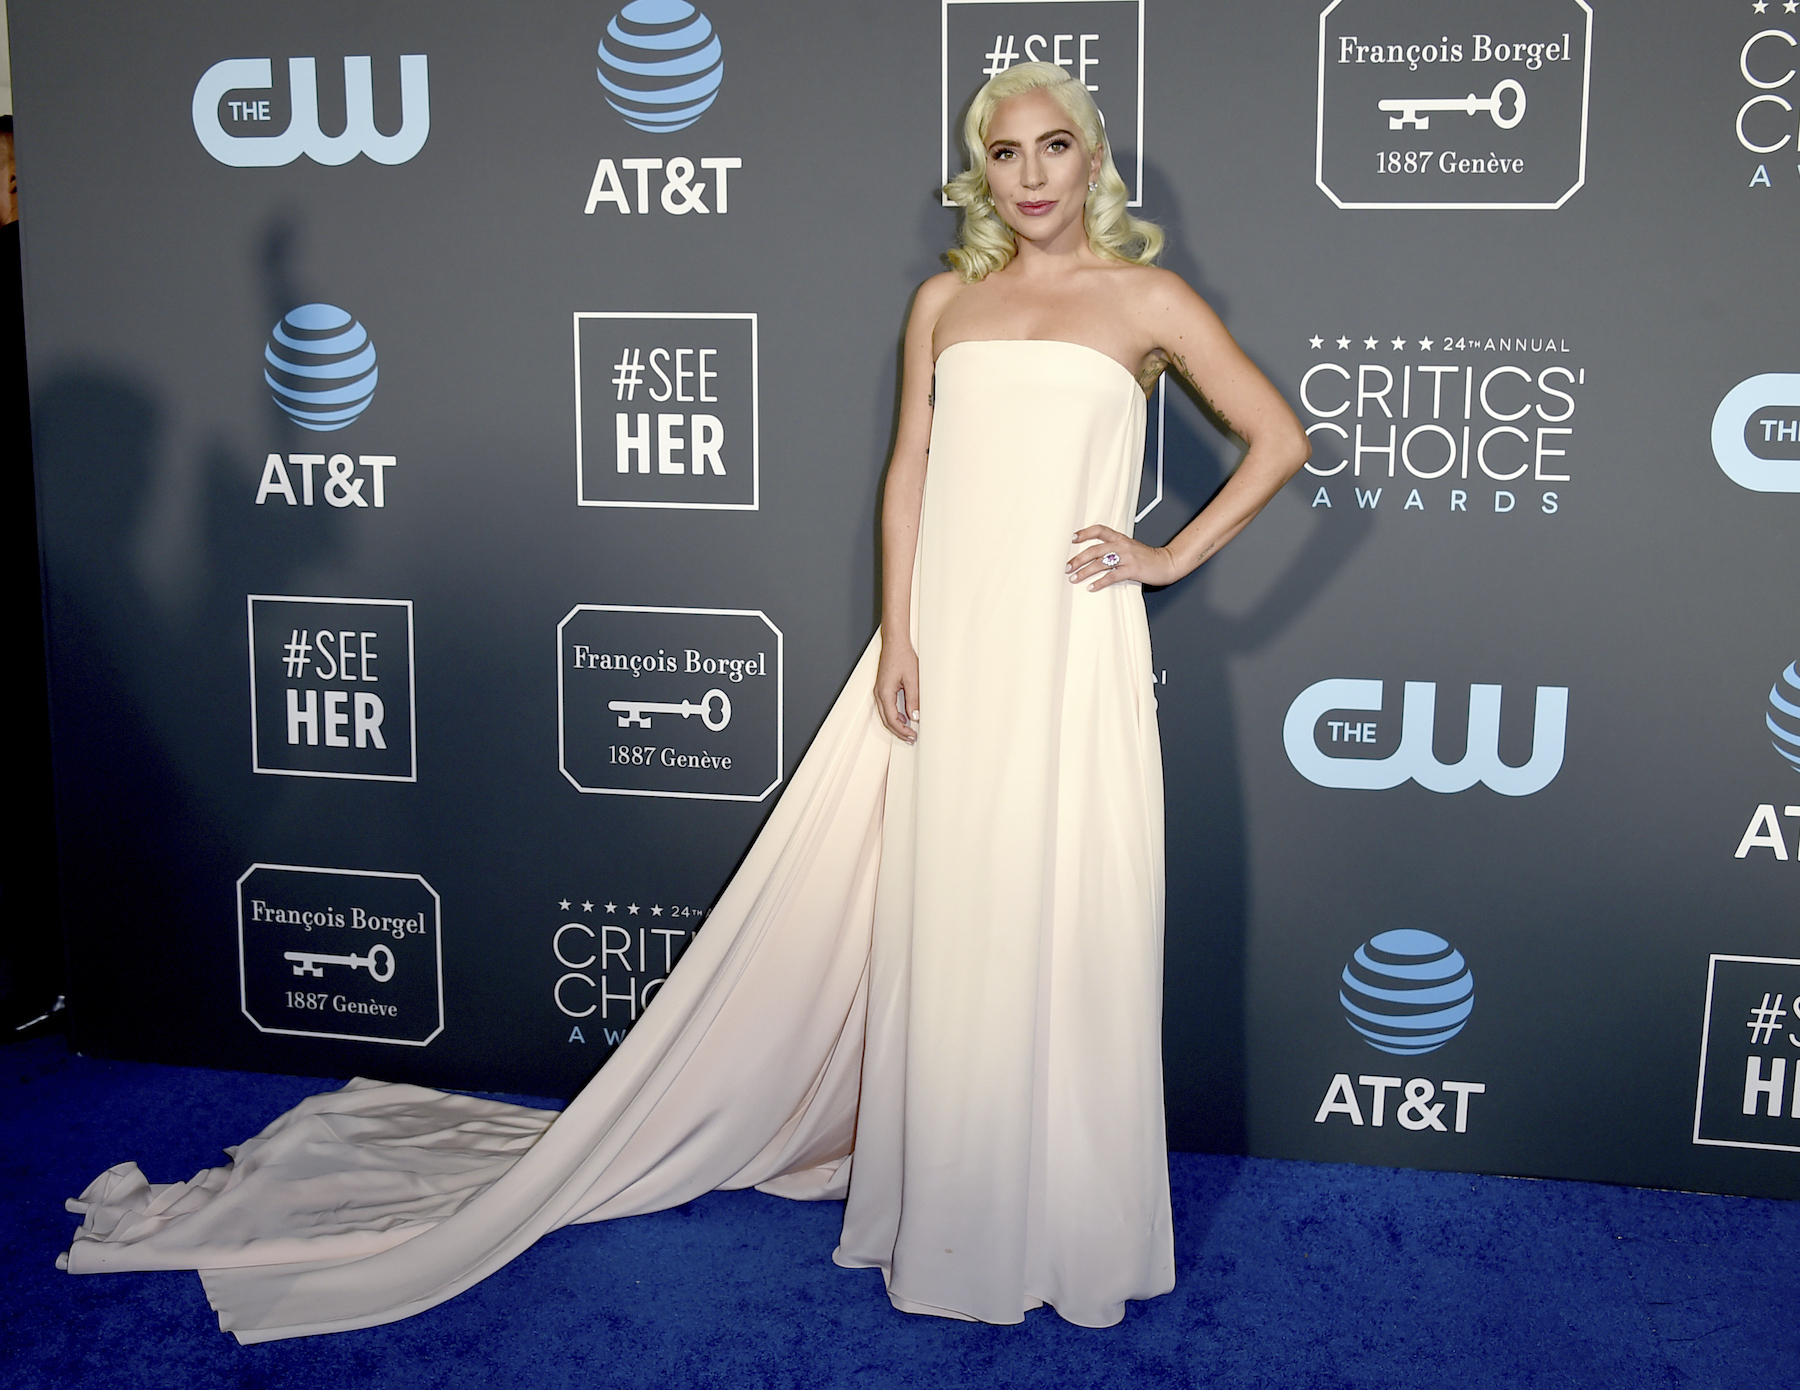 "<div class=""meta image-caption""><div class=""origin-logo origin-image ap""><span>AP</span></div><span class=""caption-text"">Lady Gaga arrives at the 24th annual Critics' Choice Awards on Sunday, Jan. 13, 2019, at the Barker Hangar in Santa Monica, Calif. (Jordan Strauss/Invision/AP)</span></div>"